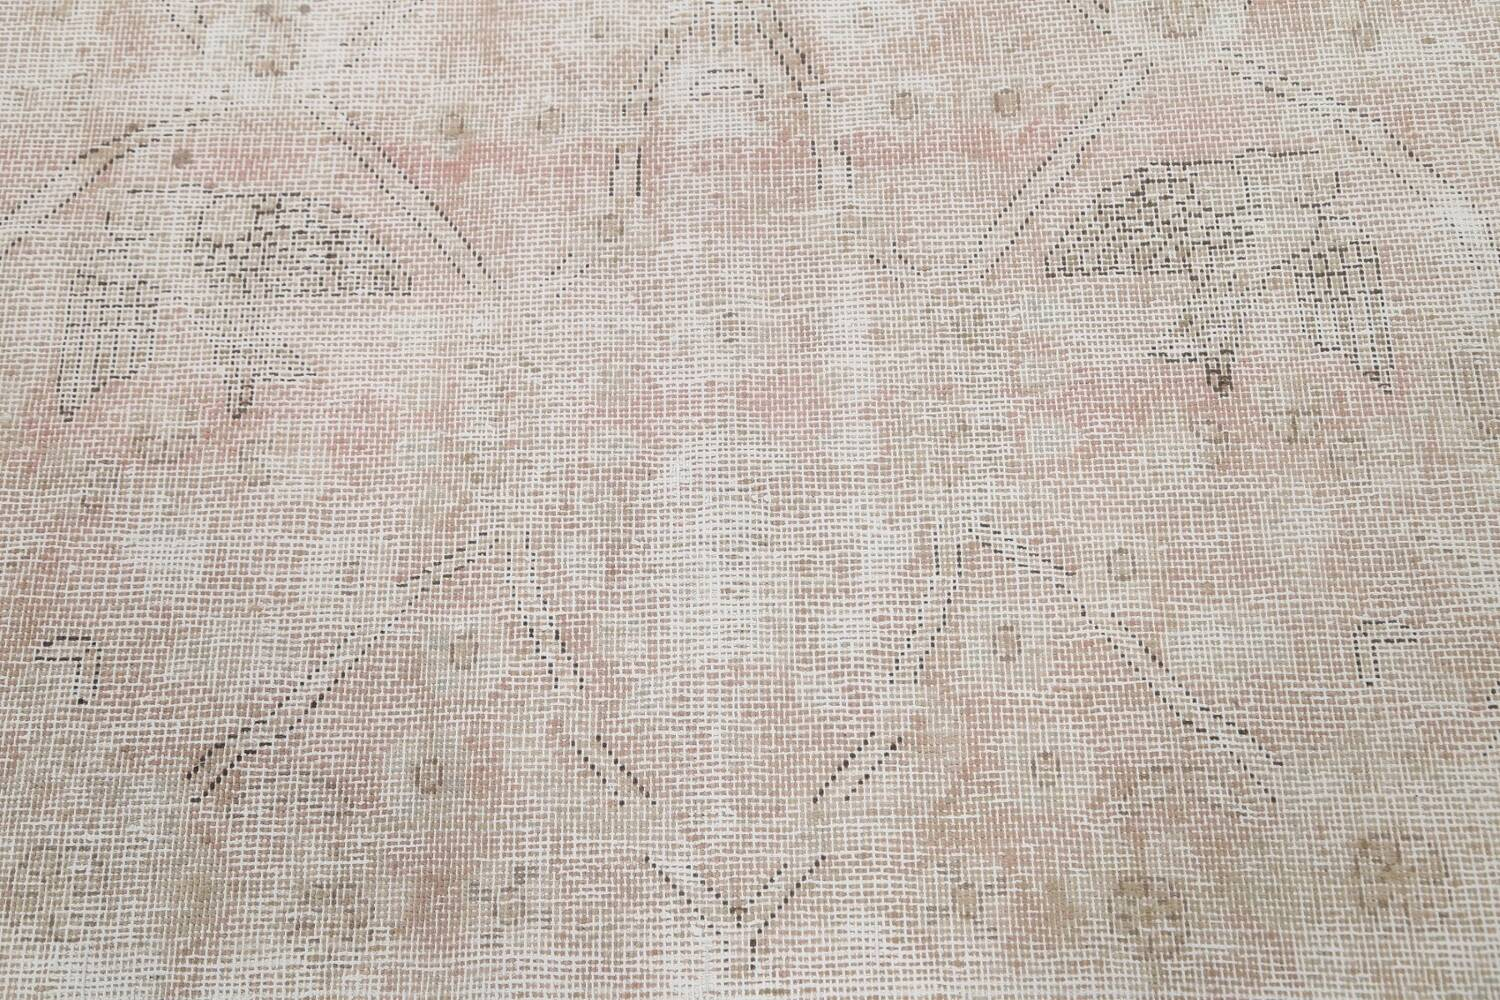 Antique Muted Distressed Tabriz Persian Area Rug 9x11 image 11